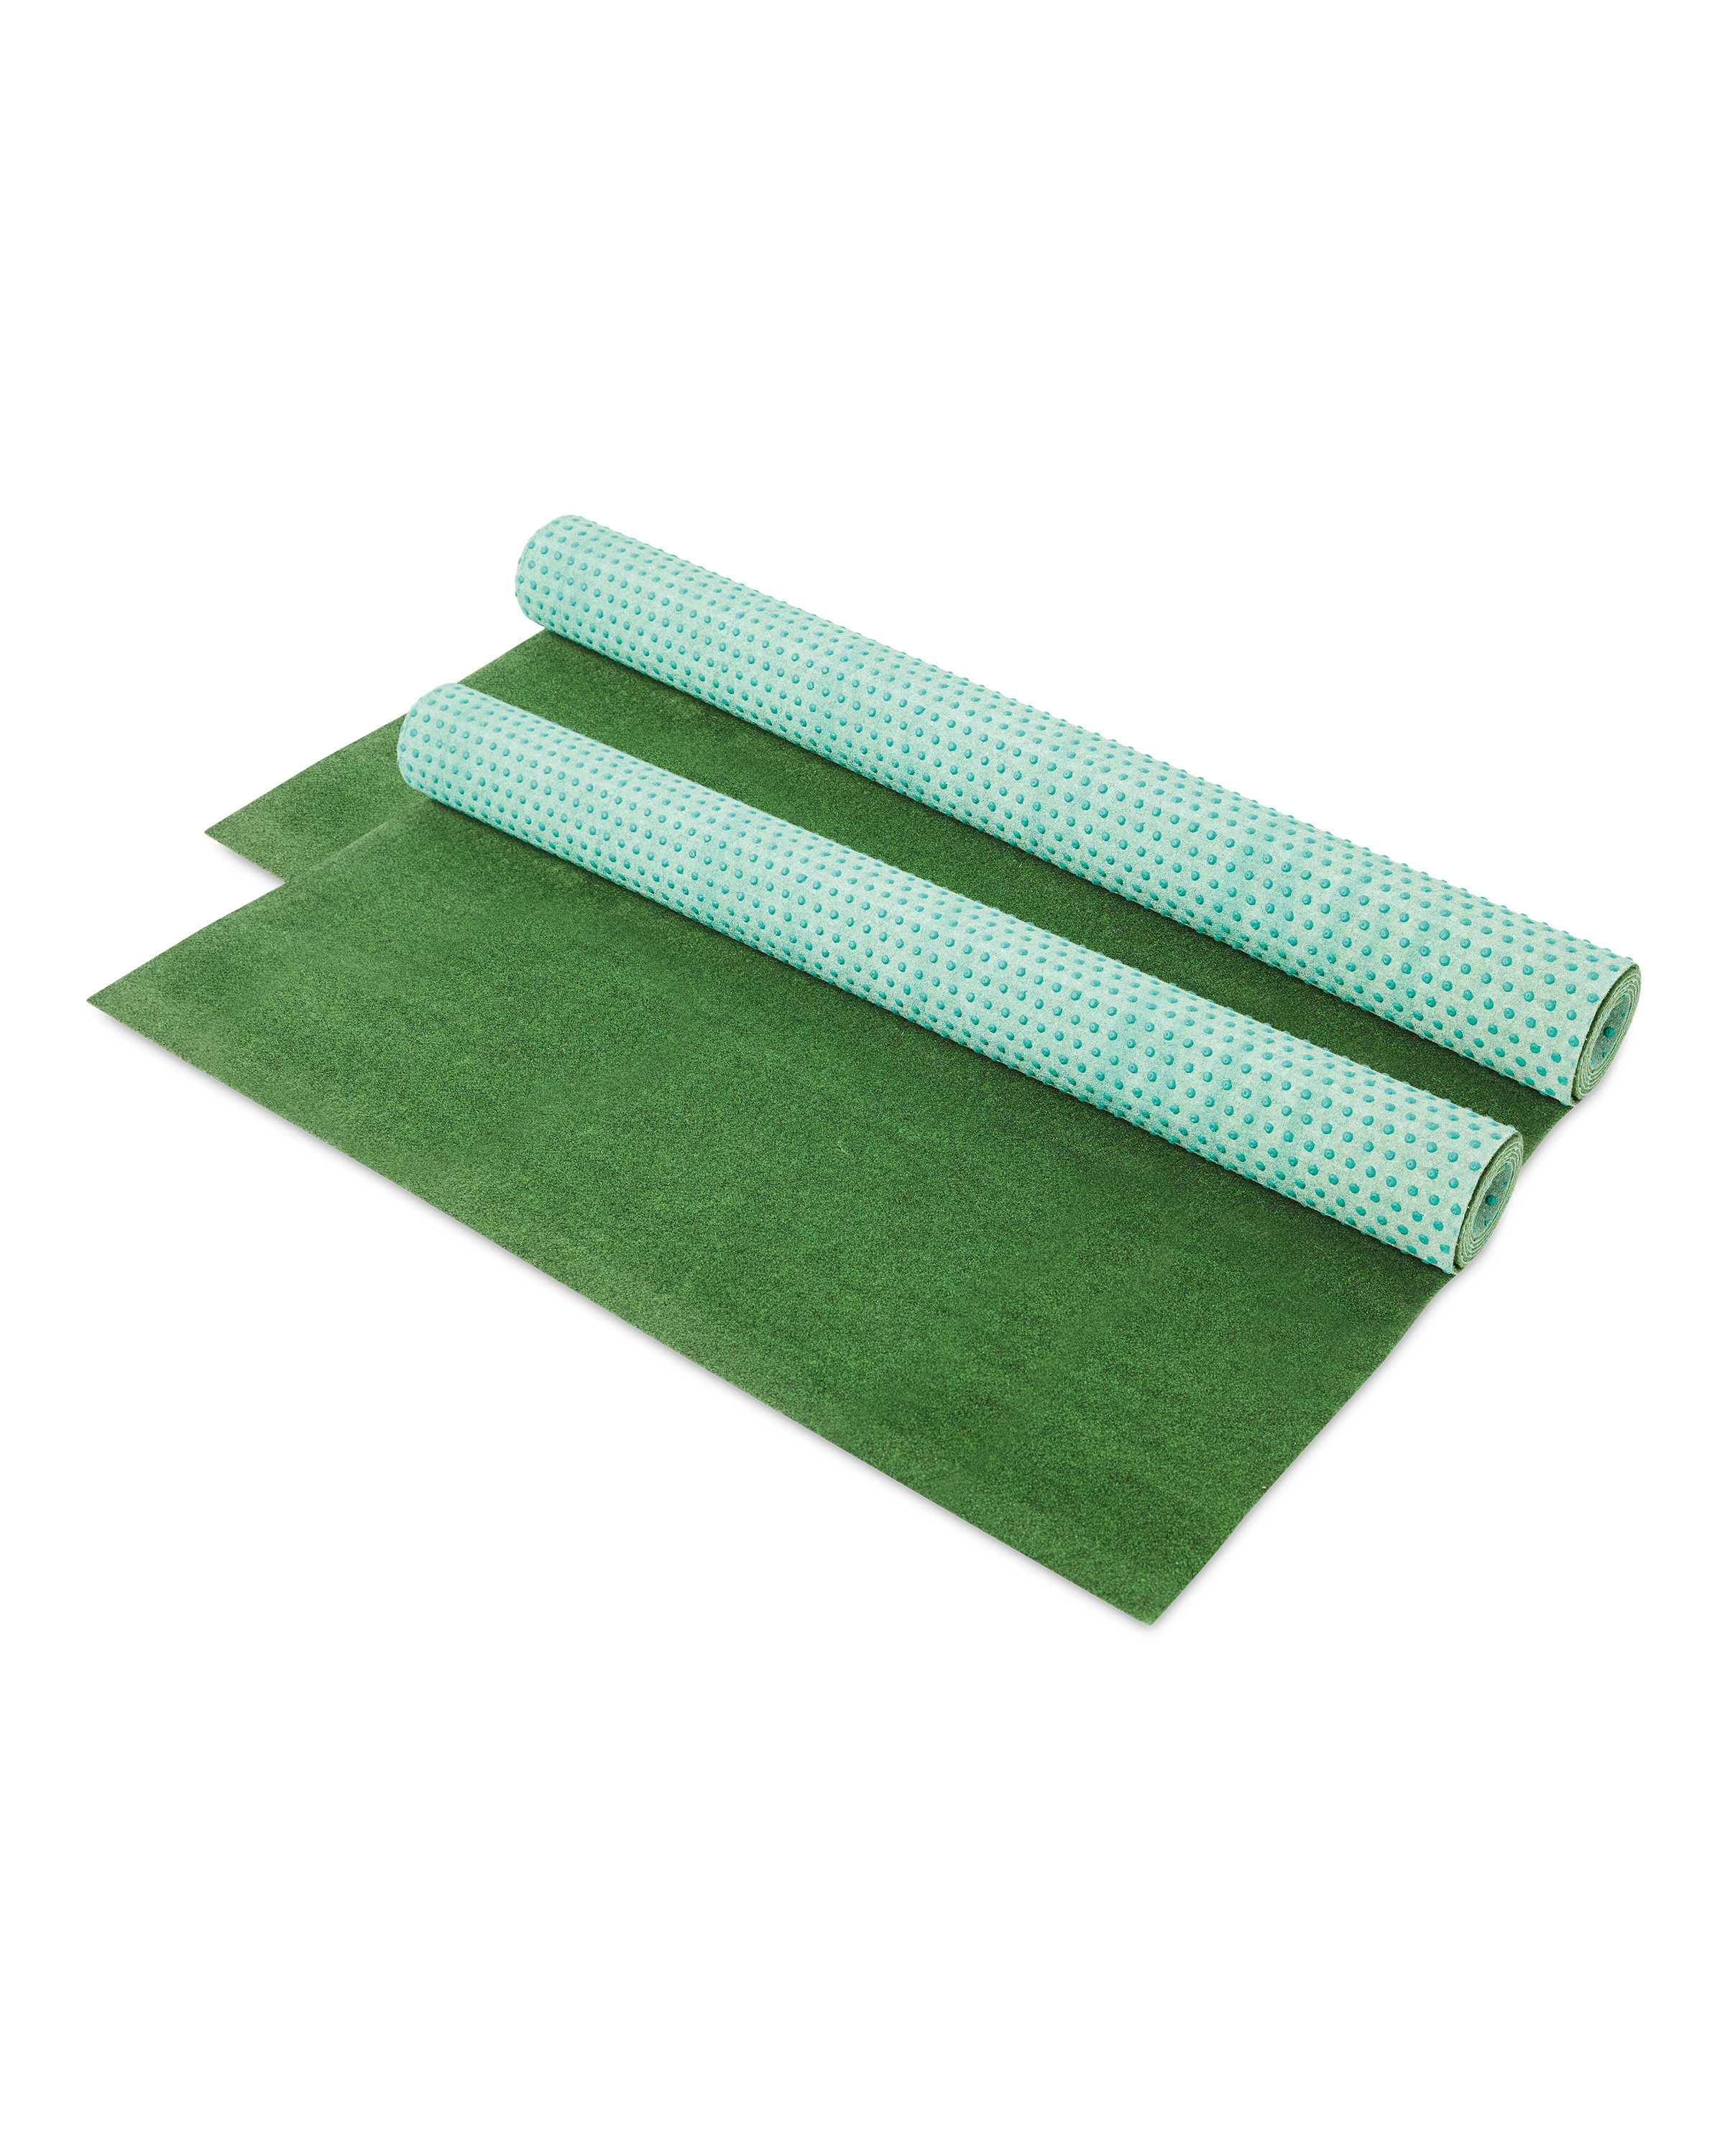 Decorative Grass Look Carpet 2 Pack